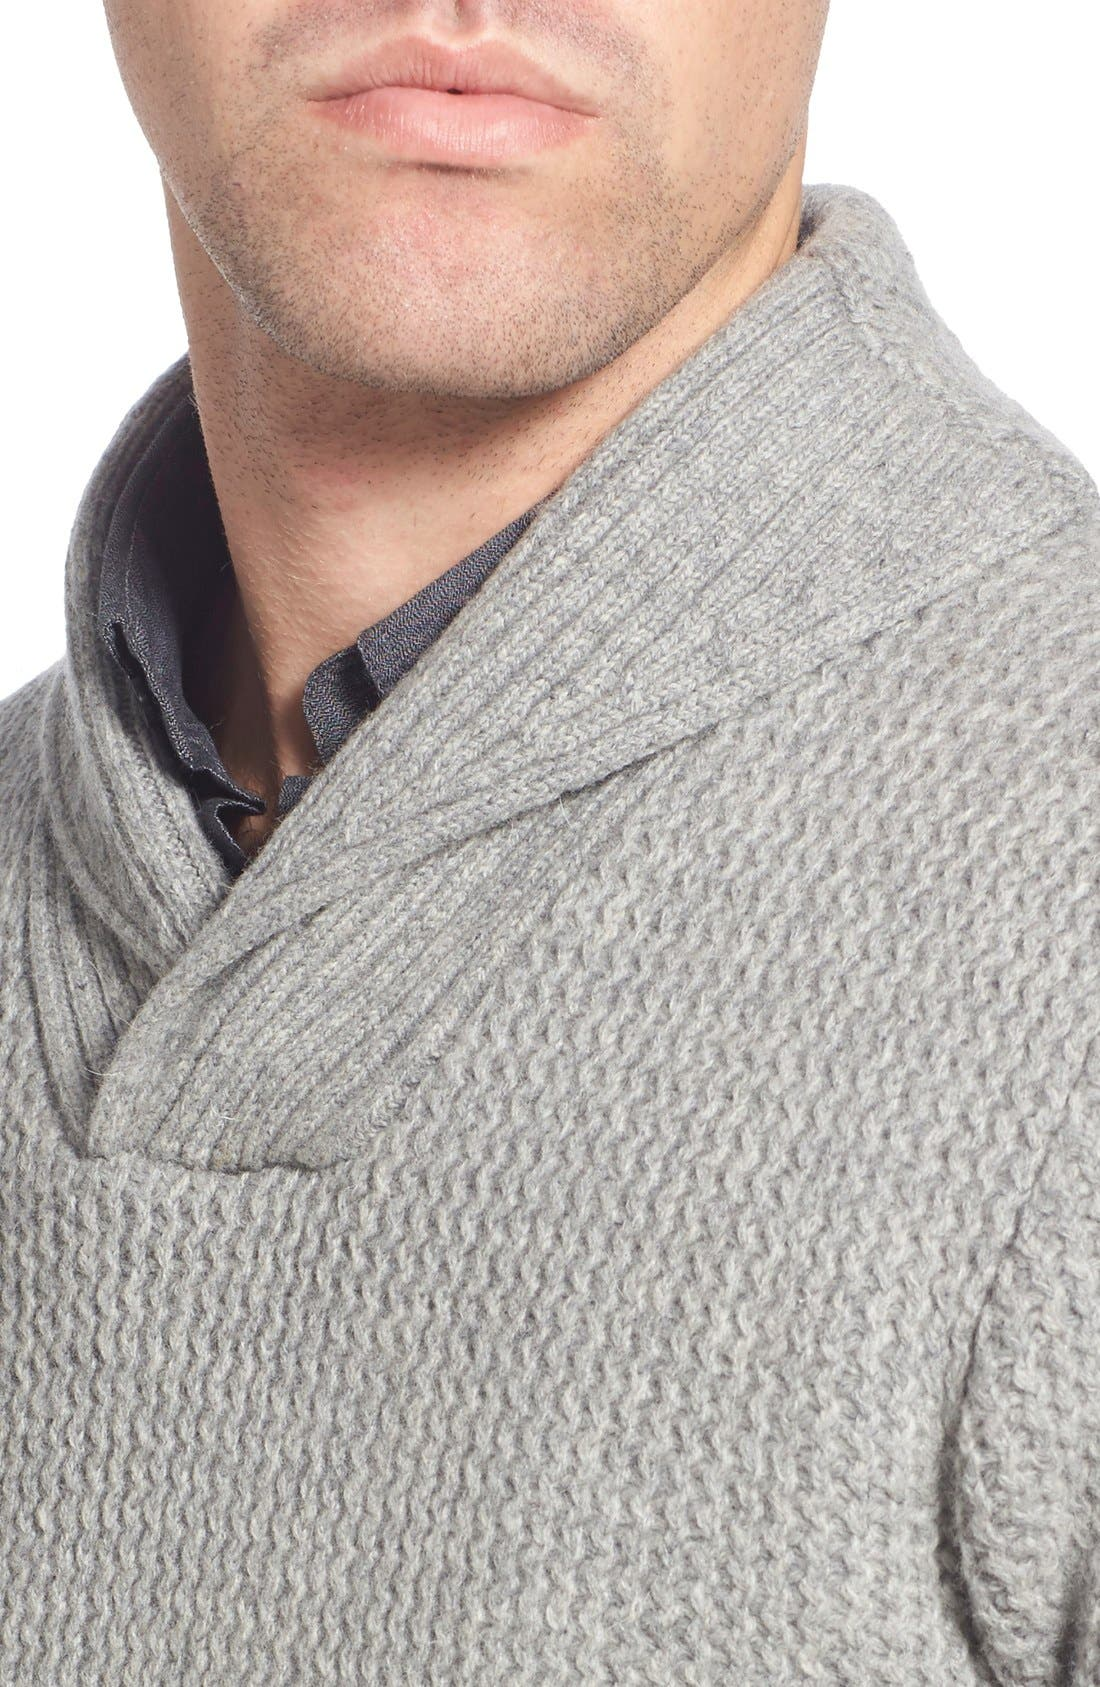 Regular Fit Shawl Collar Sweater,                             Alternate thumbnail 4, color,                             023